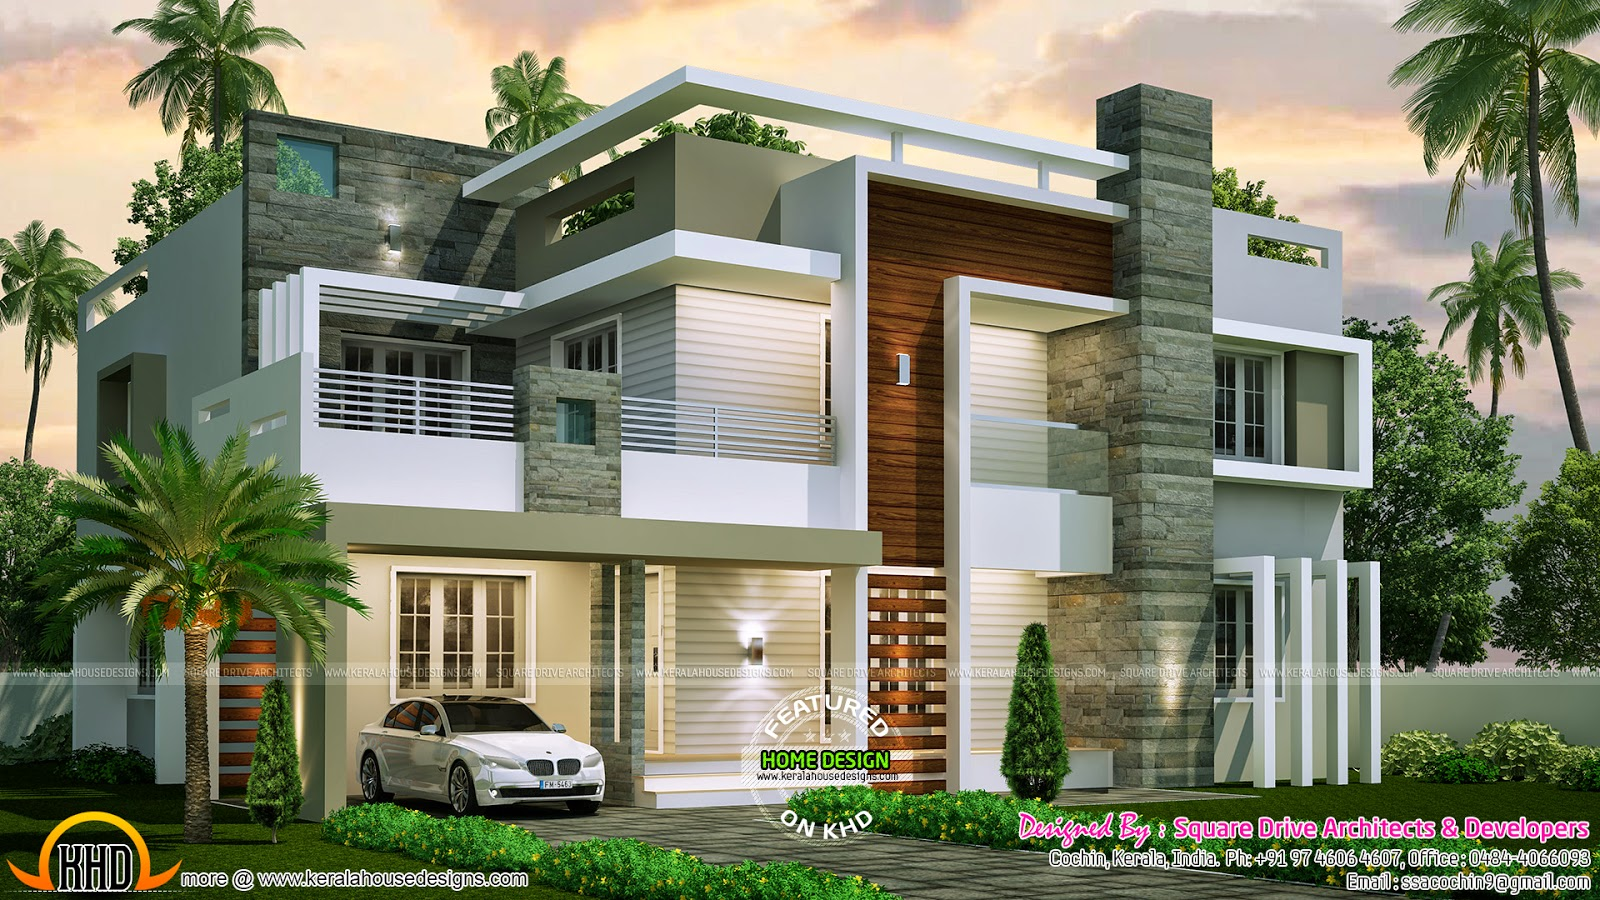 4 bedroom contemporary home design kerala home design for Home design 4 bedroom